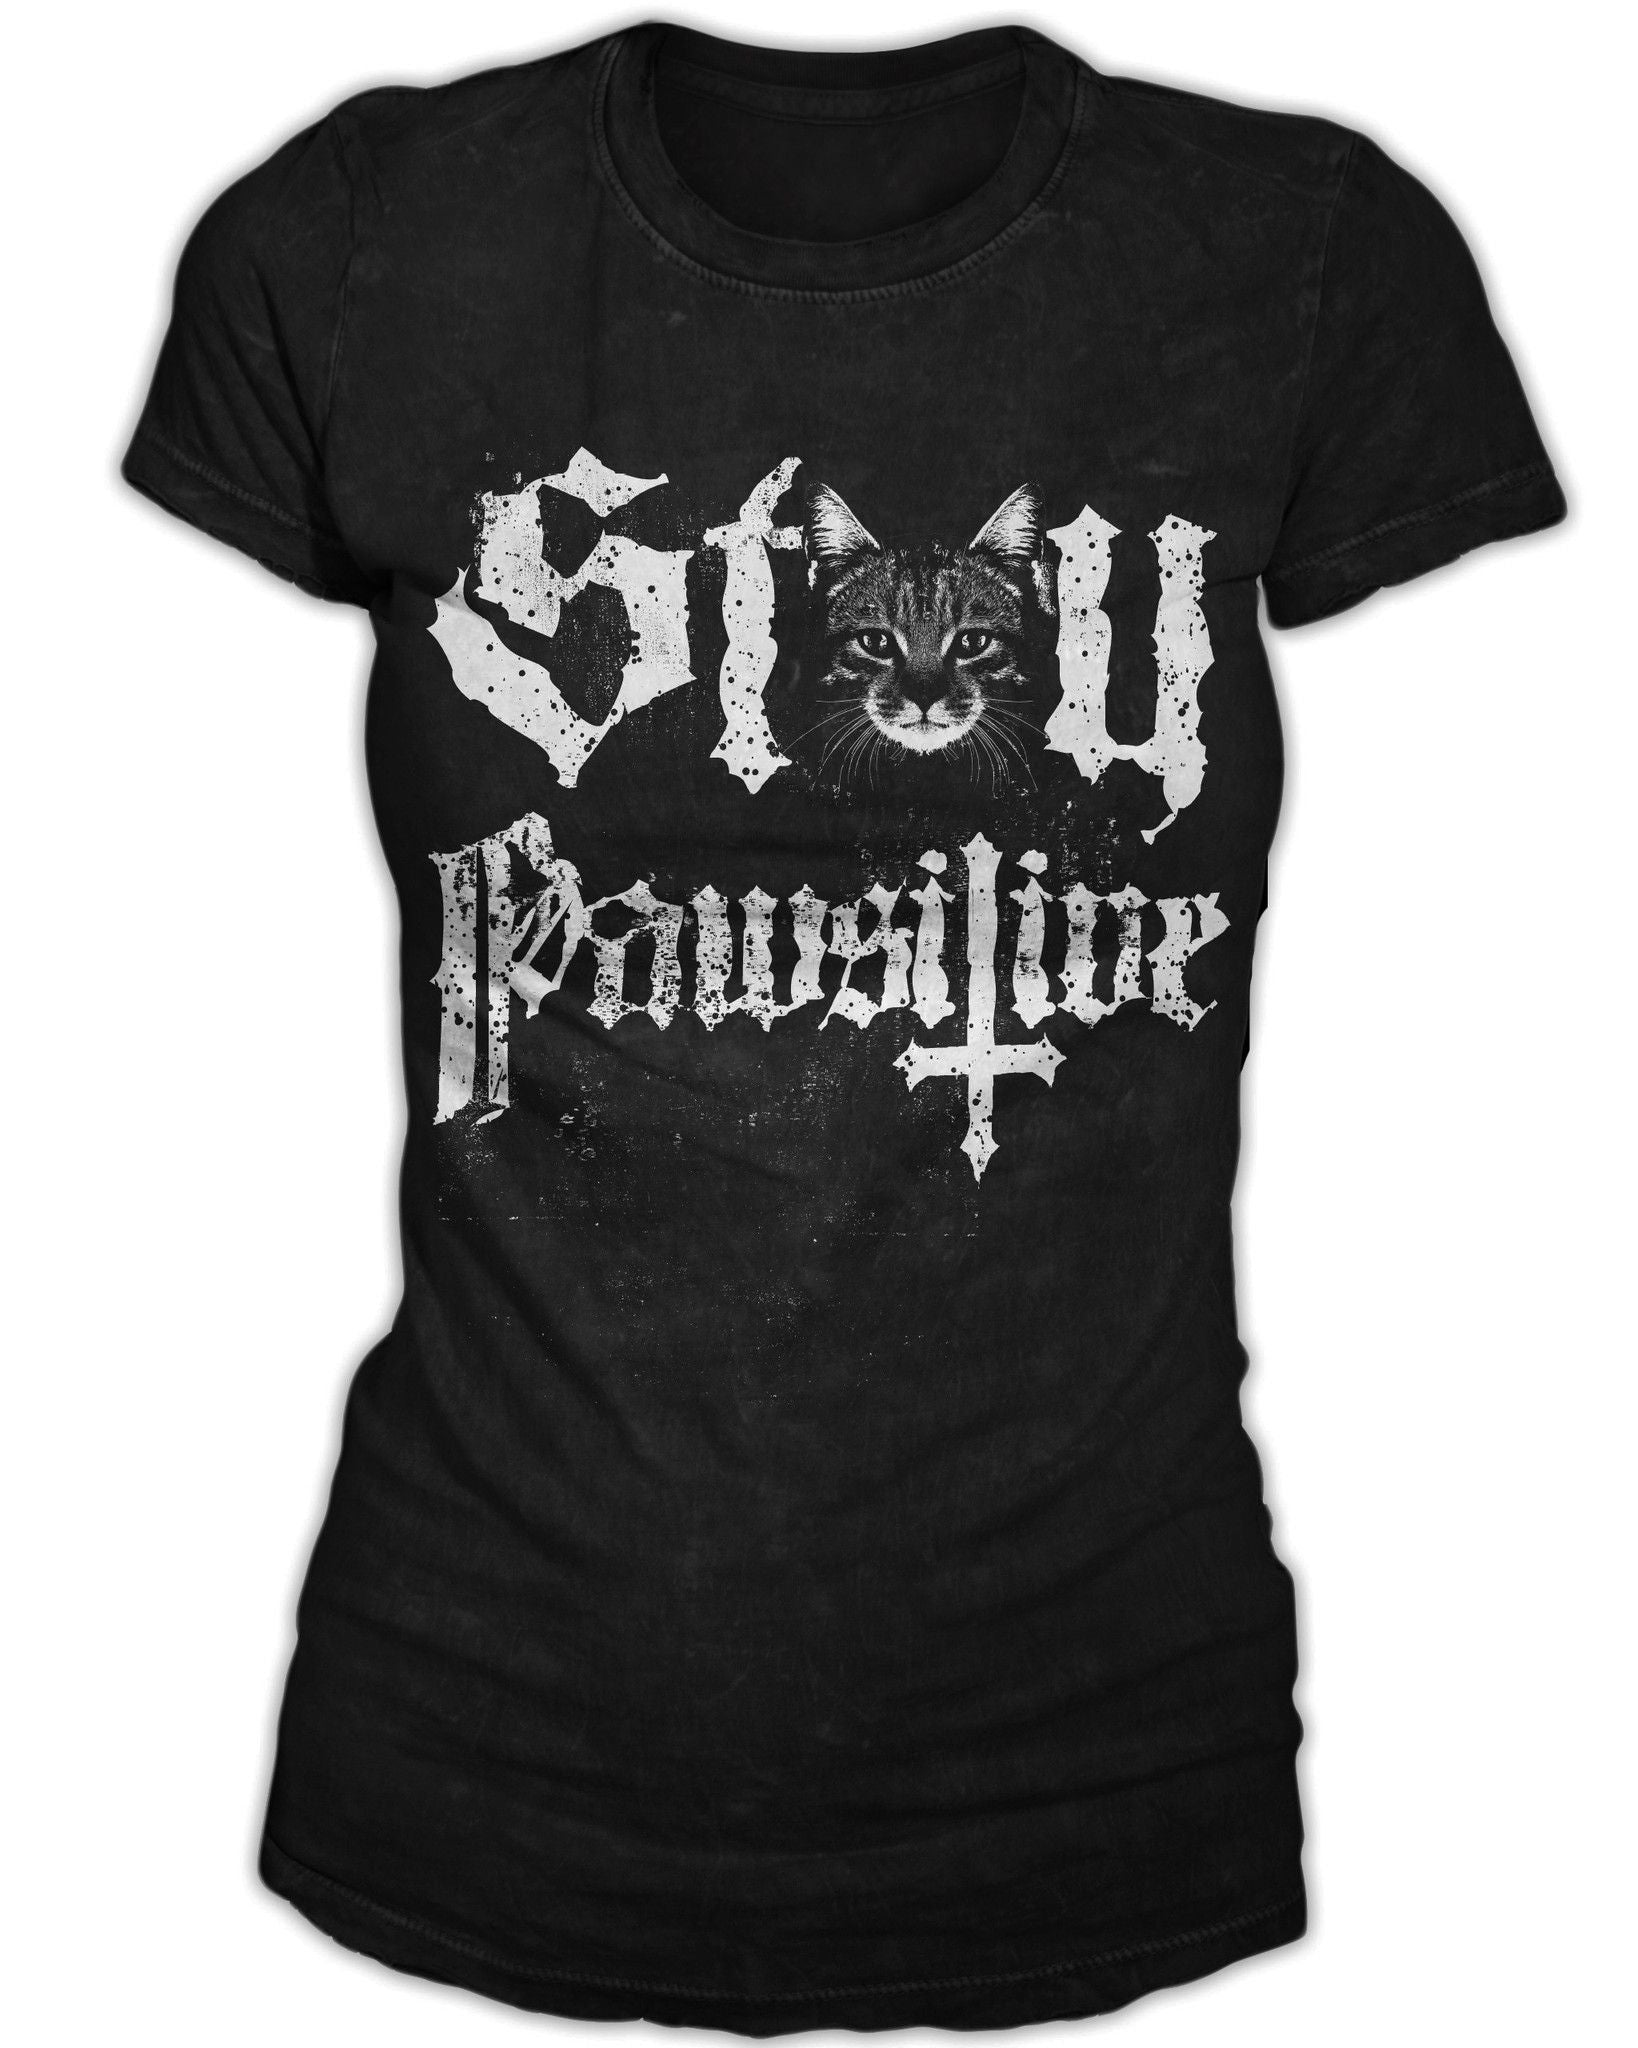 Stay Pawsitive - Women's Tee